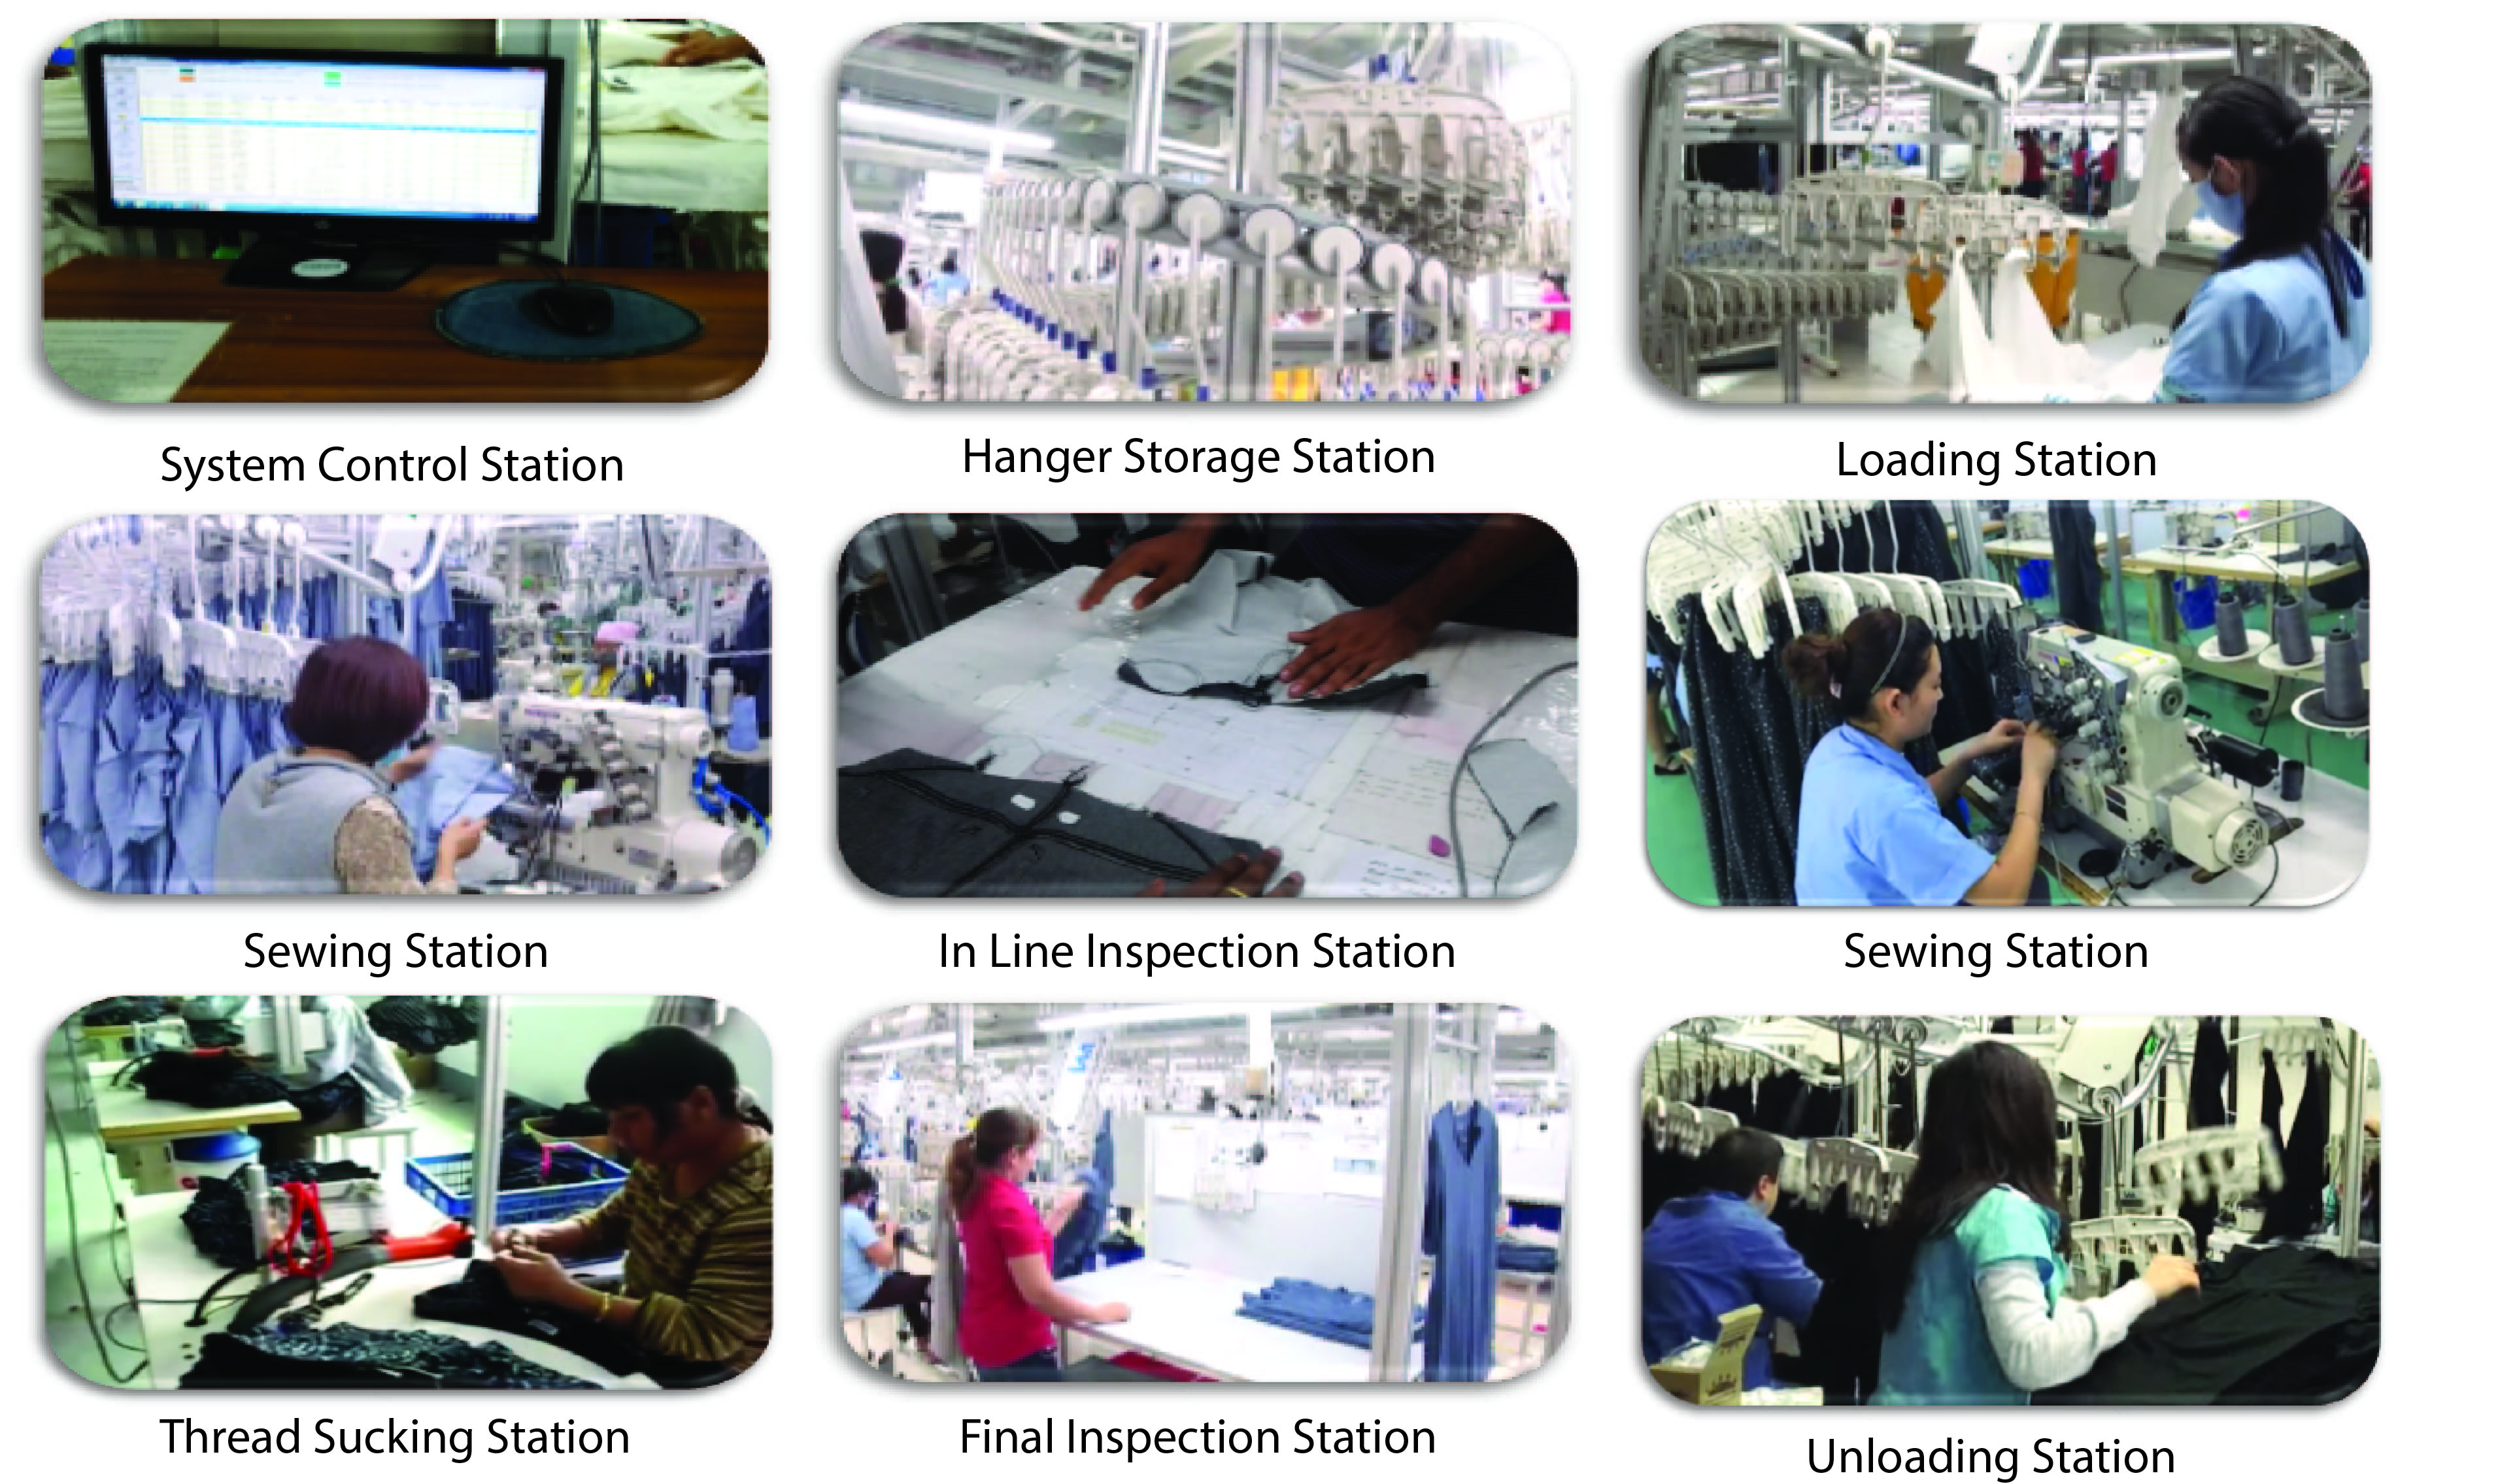 Modular Production System | Cellular Garment Manufacturing | Toyota Sewing System | Unit Production System | Overhead Production System | Garment Production System | Apparel Production SystemHanger Production System | Progressive Bundle System | Textile Study Center | textilestudycenter.com